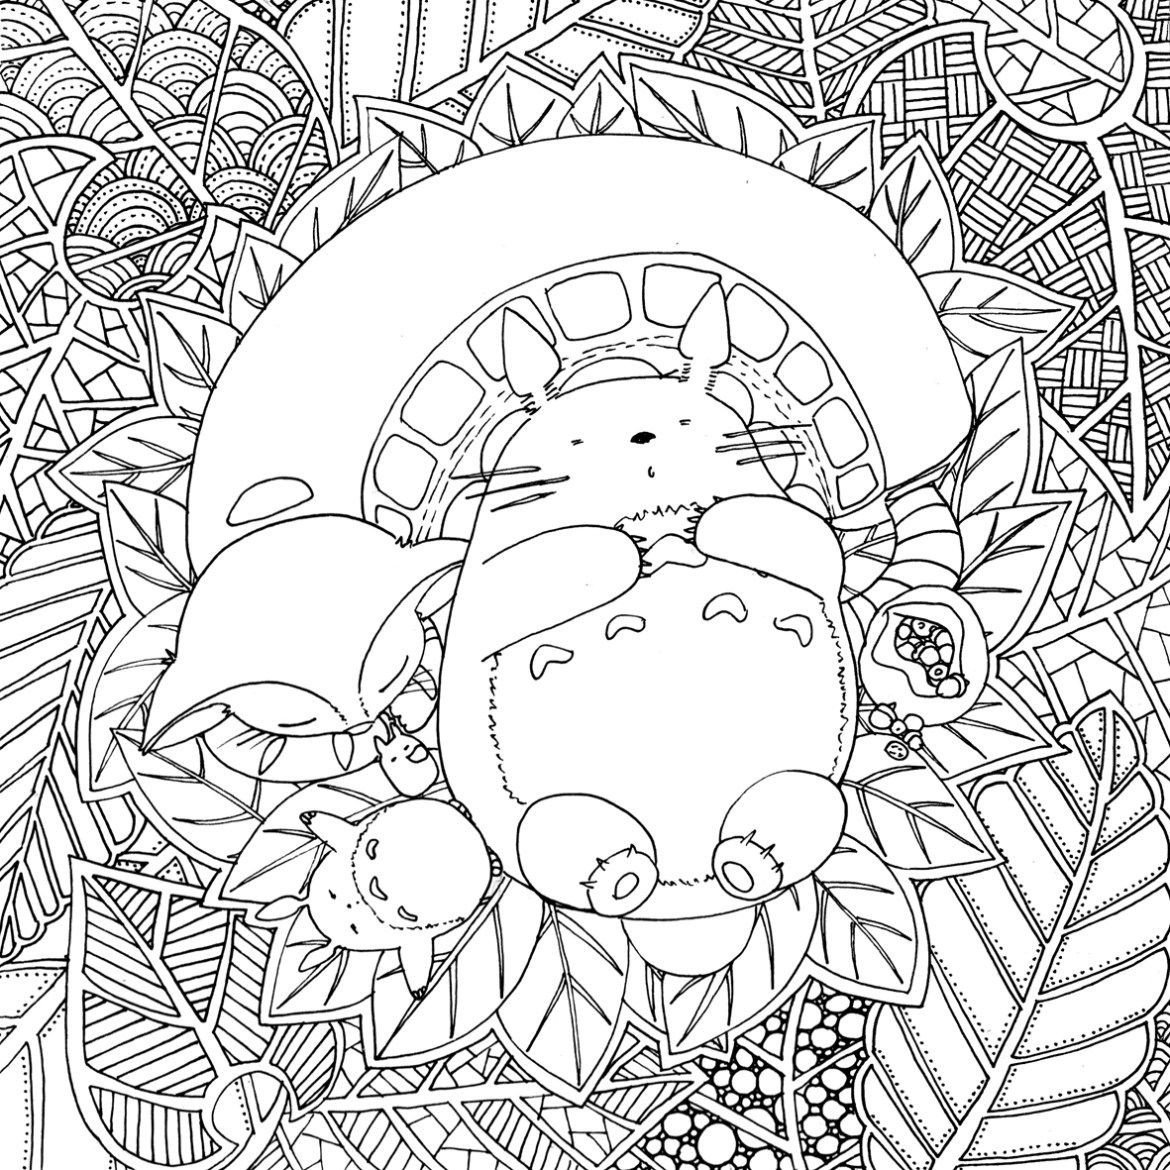 1170x1170 Studio Ghibli Coloring Pages